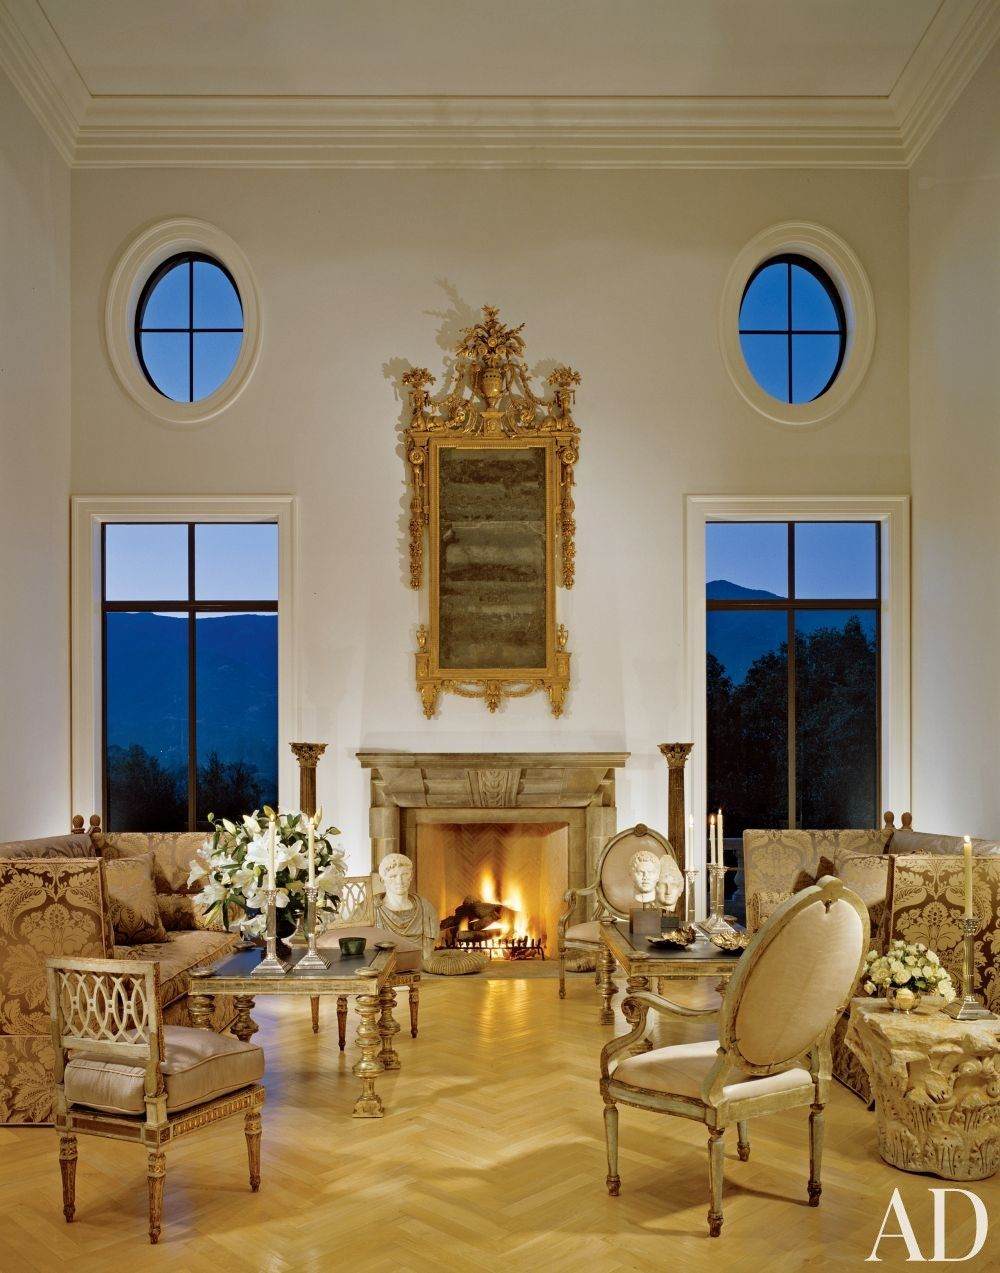 traditional living room by craig wright via archdigest on amazing inspiring modern living room ideas for your home id=31162